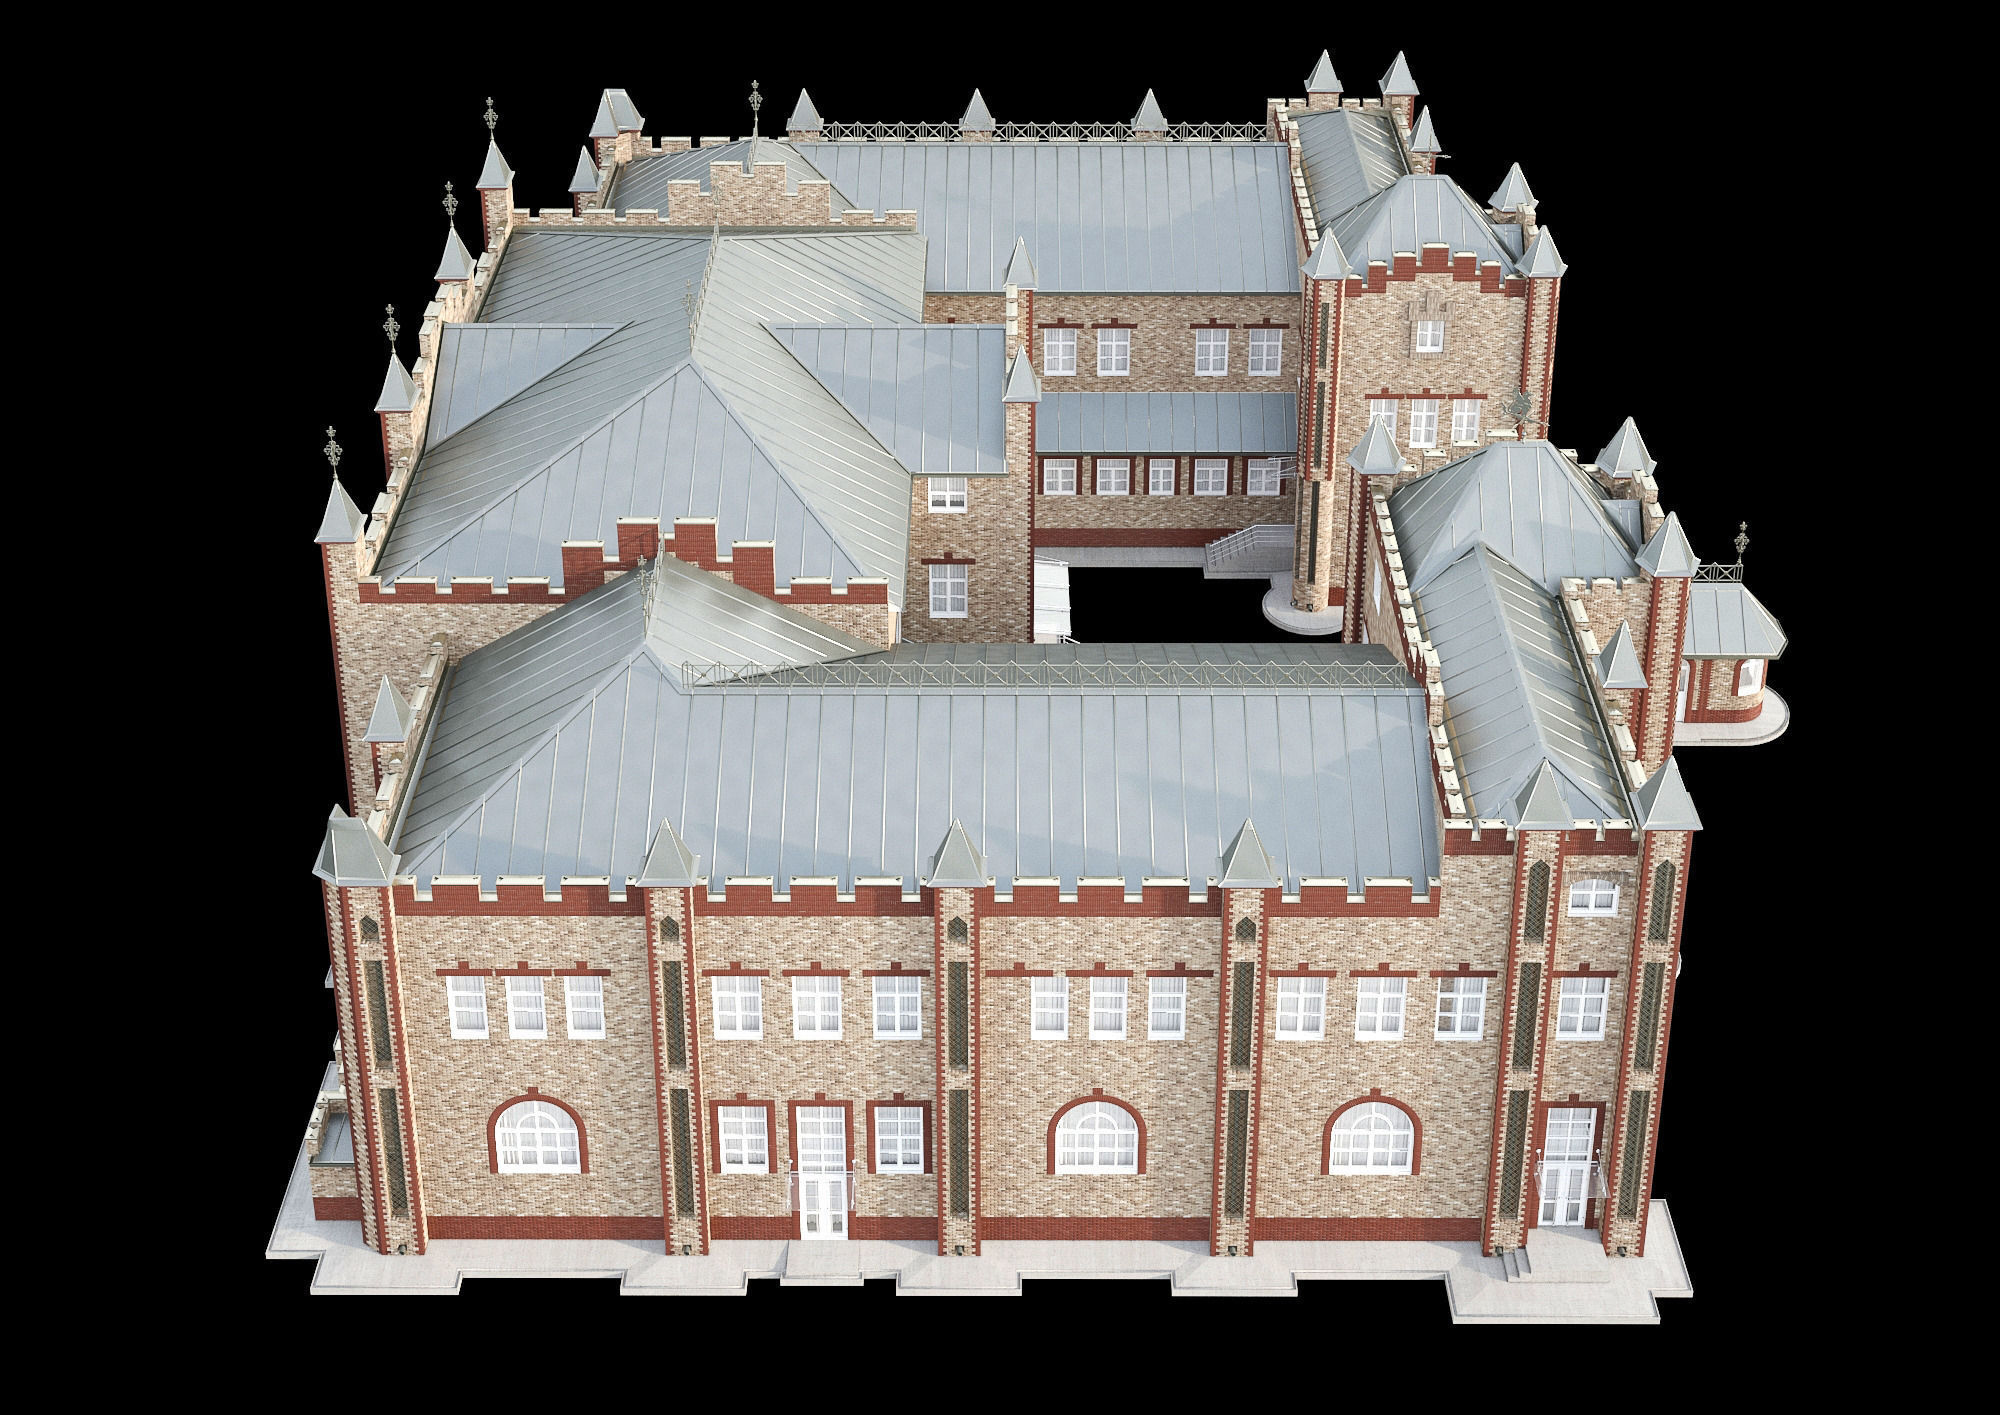 Queen anne style building 3d model max fbx for Queen anne style